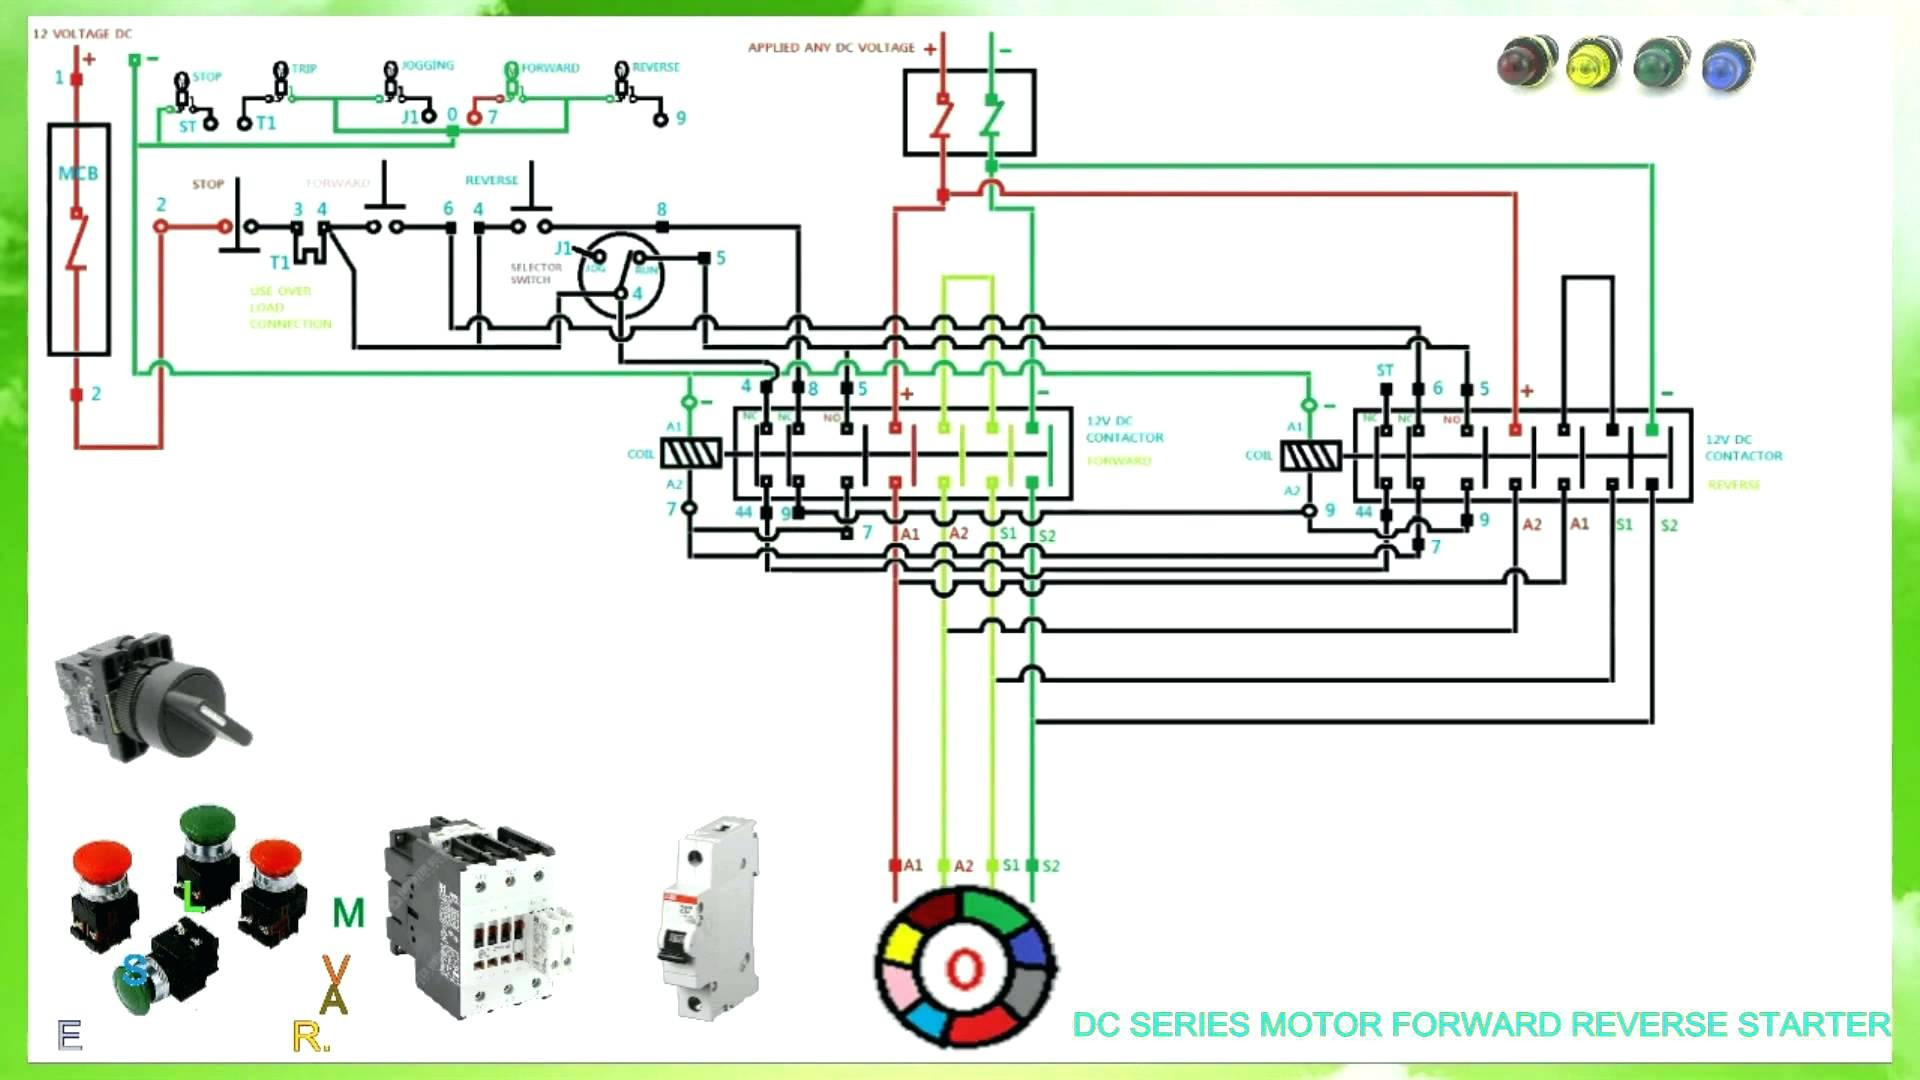 hight resolution of 3ph motor forward and reverse control wiring schematics wiring diagram single phase motor wiring diagram forward reverse